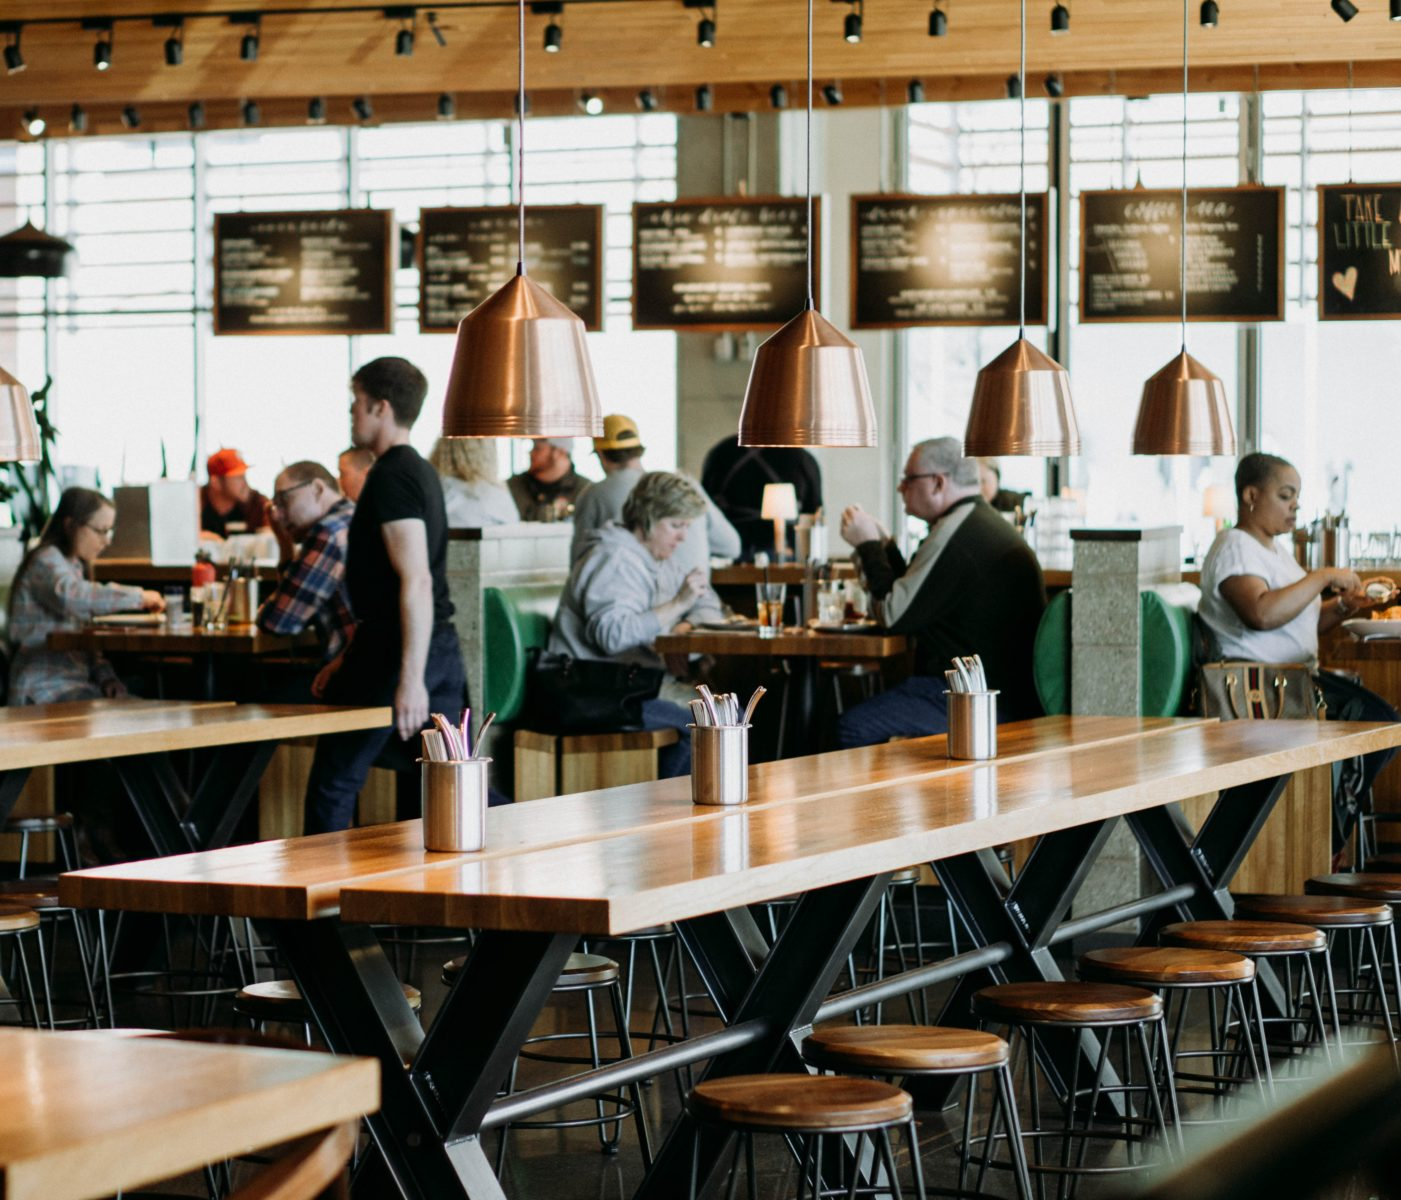 The Robotic Revolution Will Dish Out Optimization in Food Service